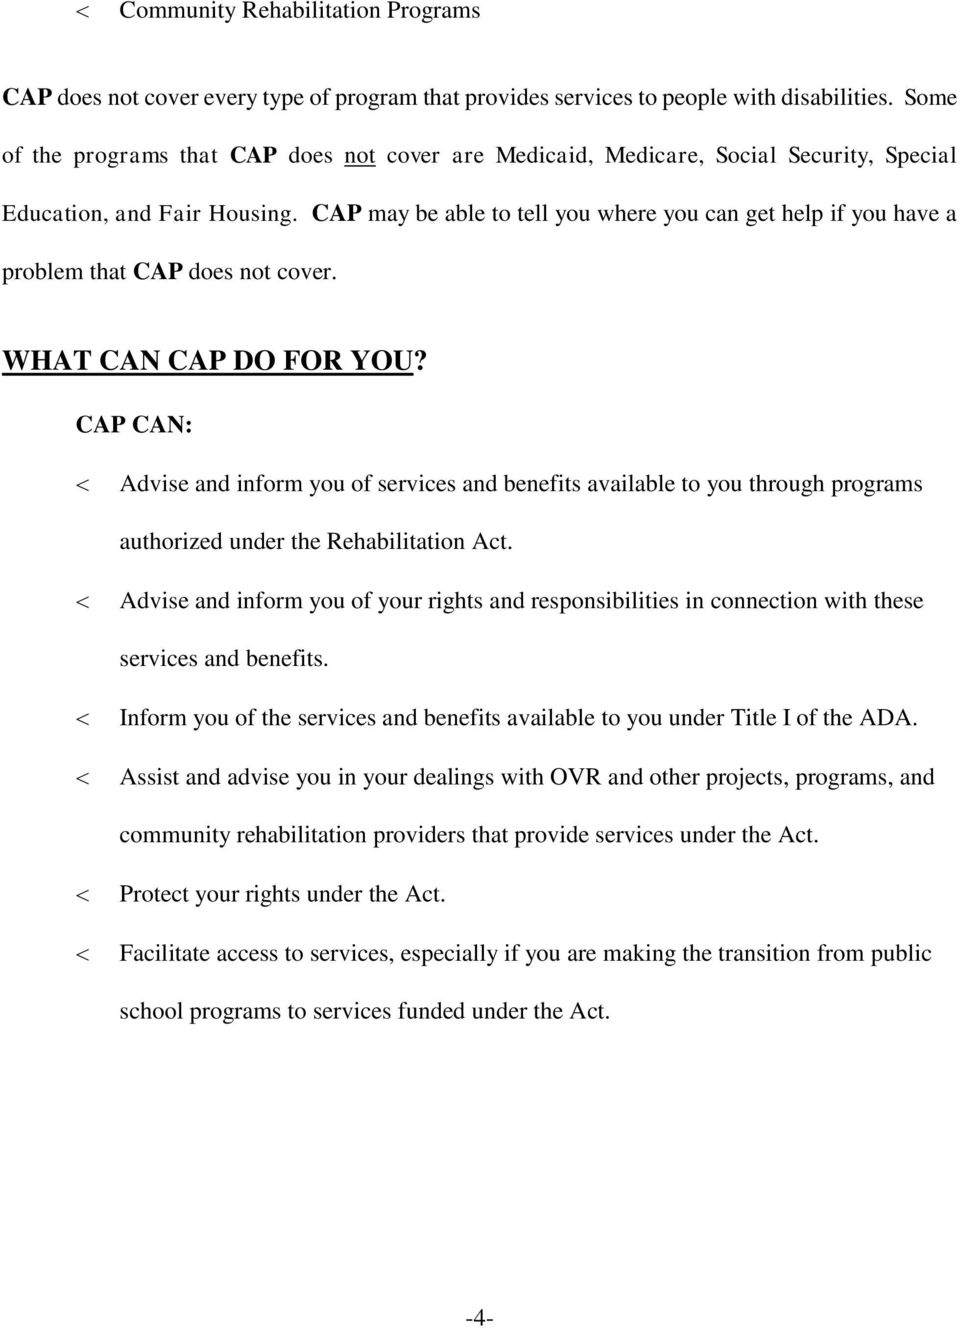 CAP may be able to tell you where you can get help if you have a problem that CAP does not cover. WHAT CAN CAP DO FOR YOU?